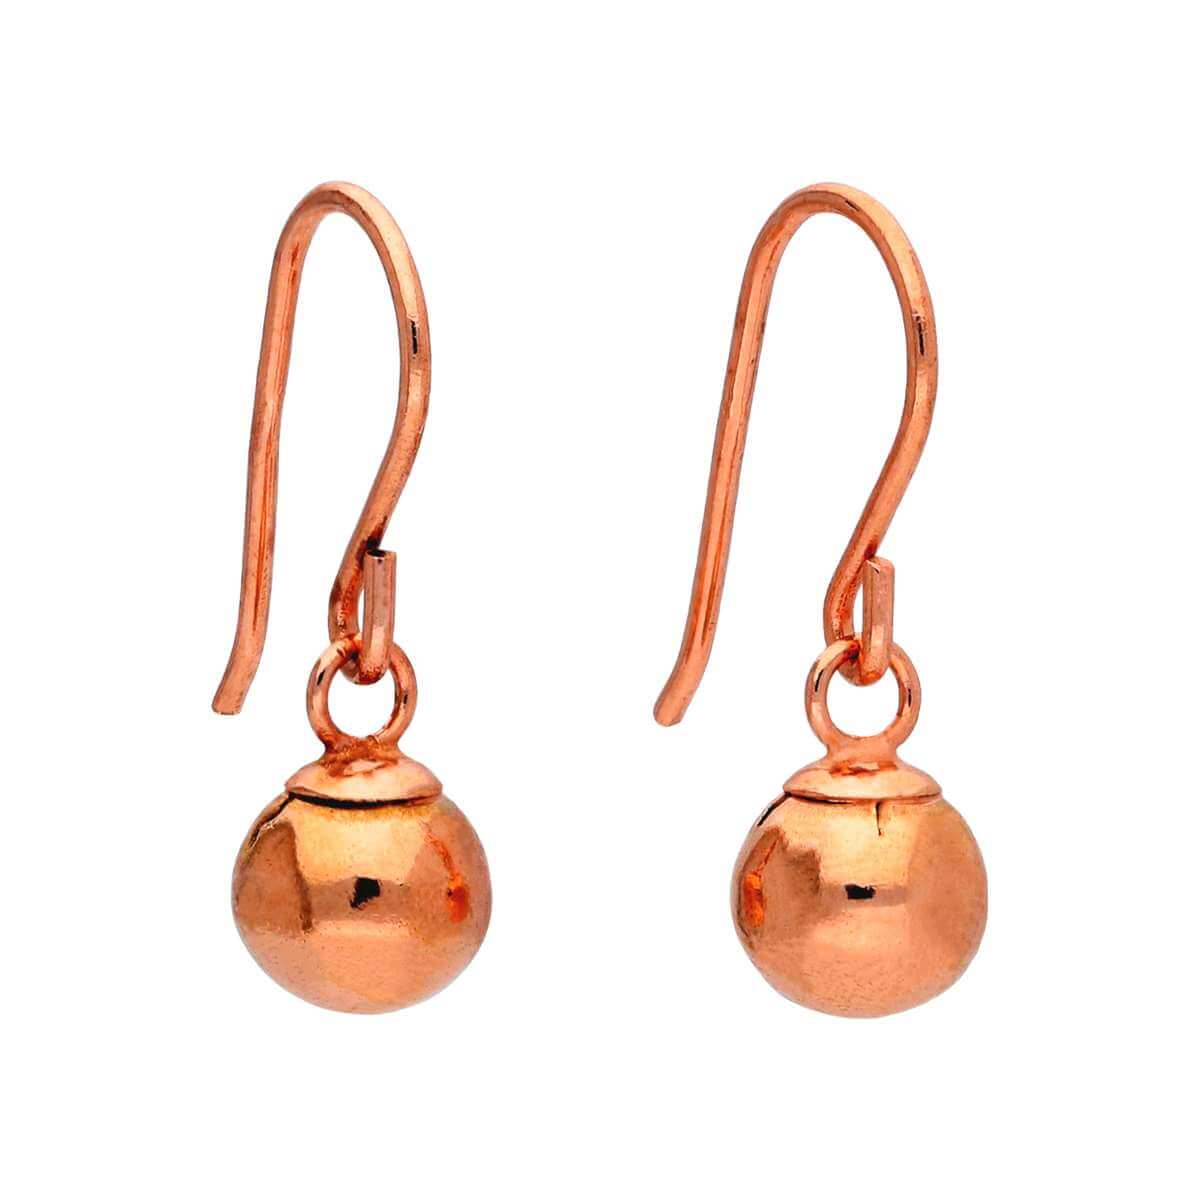 9ct Rose Gold Dangle Earrings